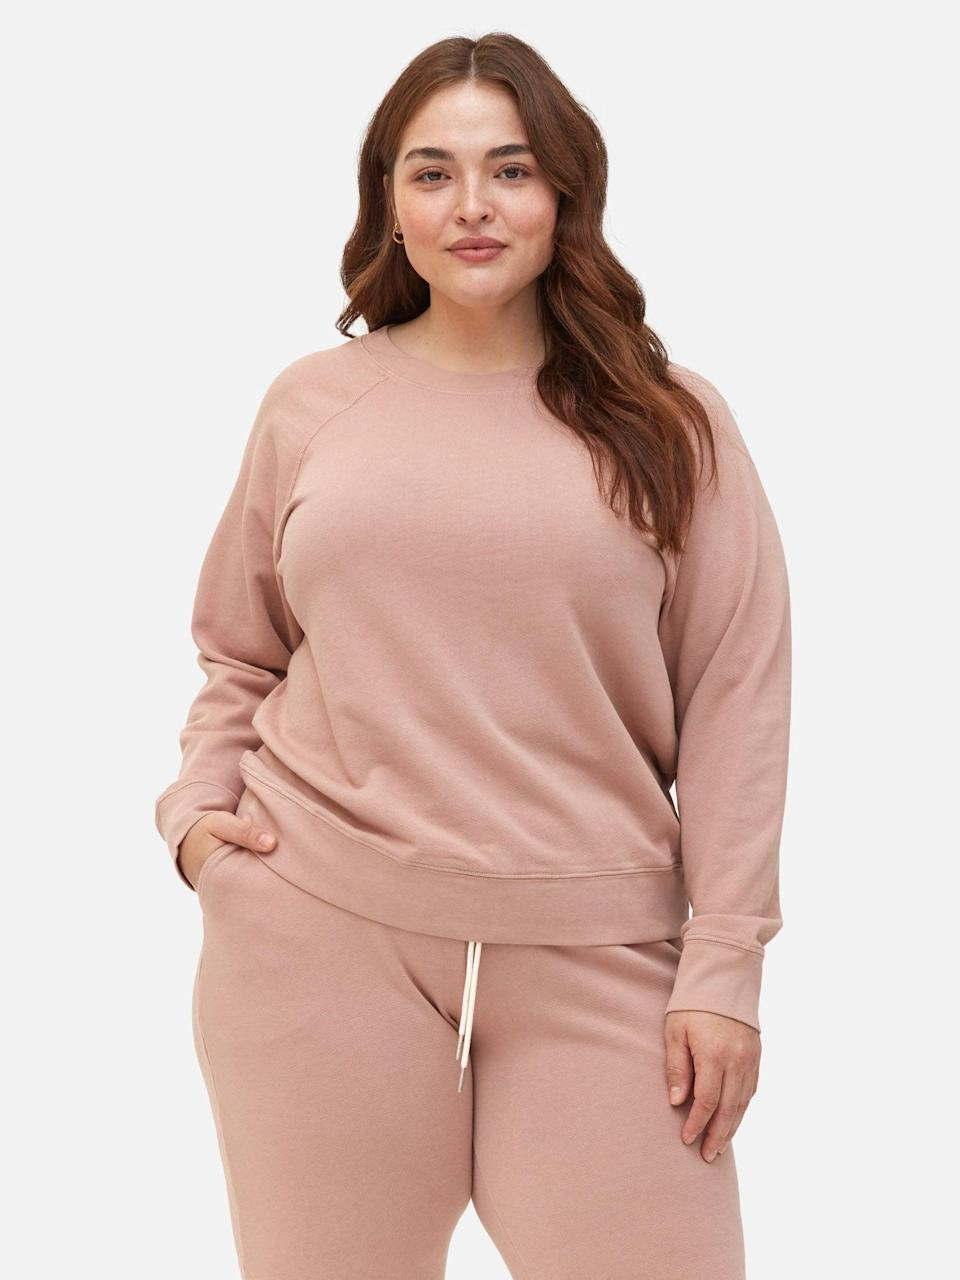 """<h2>Mate The Label</h2><br><strong>Best For: </strong>Loungewear Pieces<br><strong>Size Range: </strong>XS-3X<br><br>Mate is the go-to destination for thoughtfully designed loungewear. The brand uses organic cotton to create all its comfy pieces –– while focusing on simple yet stylish design. <br><br><strong>Customer Take:</strong> """"I've been working towards upgrading my loungewear since I spend so much time at home in sweat pants these days! These are a dream. The fit is a bit bigger than anticipated, but they are so soft and so well made. I can't wait to get the matching sweatshirt.""""<br><br><em>Shop <strong><a href=""""https://matethelabel.com/pages/reviews"""" rel=""""nofollow noopener"""" target=""""_blank"""" data-ylk=""""slk:Mate the Label"""" class=""""link rapid-noclick-resp"""">Mate the Label</a></strong></em><br><br><strong>Mate The Label</strong> Organic Terry Raglan Sweatshirt, $, available at <a href=""""https://go.skimresources.com/?id=30283X879131&url=https%3A%2F%2Fmatethelabel.com%2Fcollections%2Fextended-collection%2Fproducts%2Forganic-terry-raglan-sweatshirt-rose"""" rel=""""nofollow noopener"""" target=""""_blank"""" data-ylk=""""slk:Mate the Label"""" class=""""link rapid-noclick-resp"""">Mate the Label</a>"""